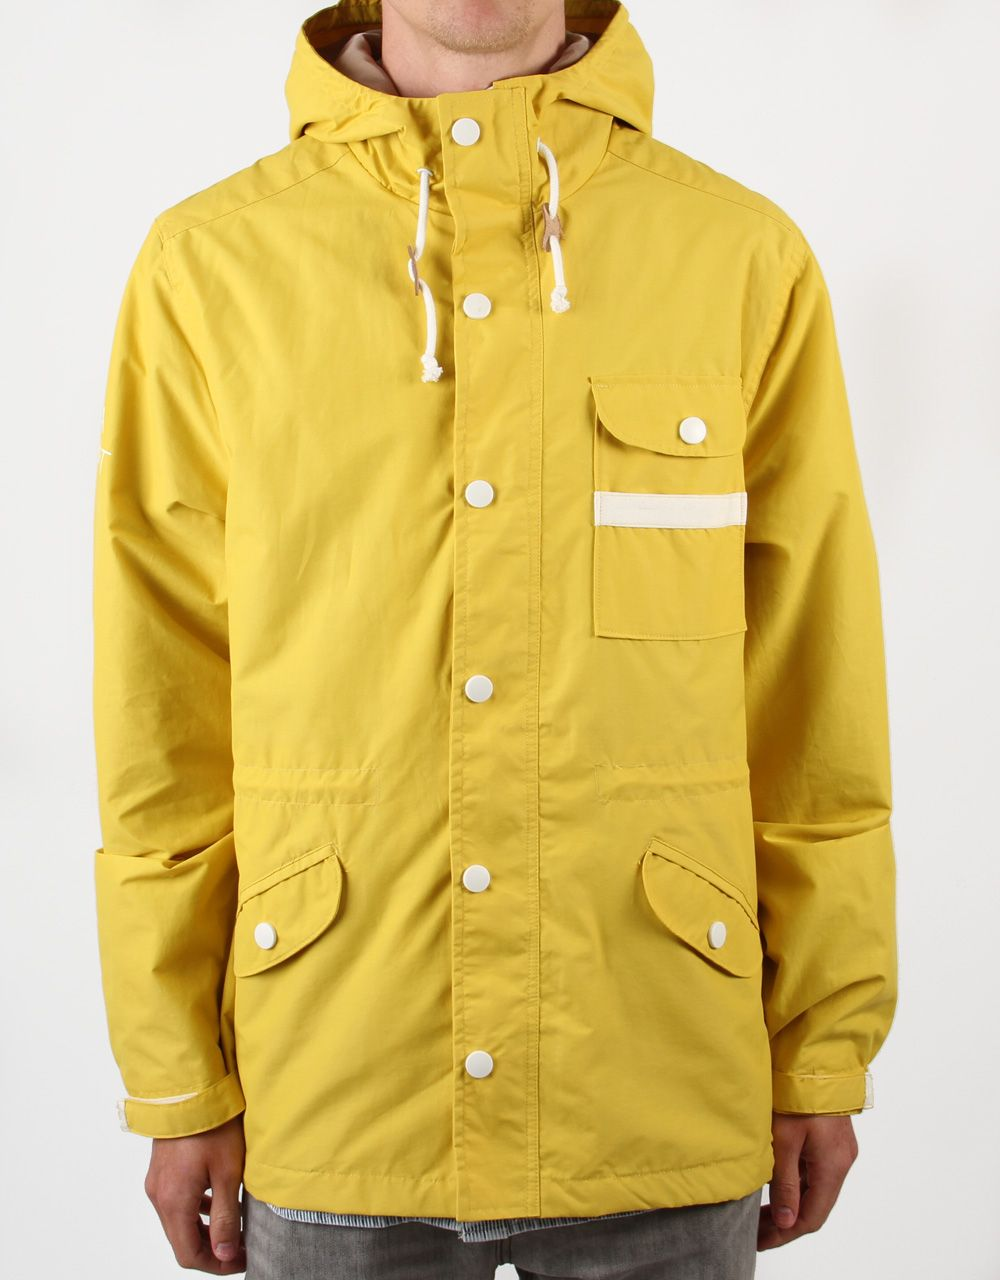 Altamont Windthrow Parka Jacket - Yellow available from route one ...